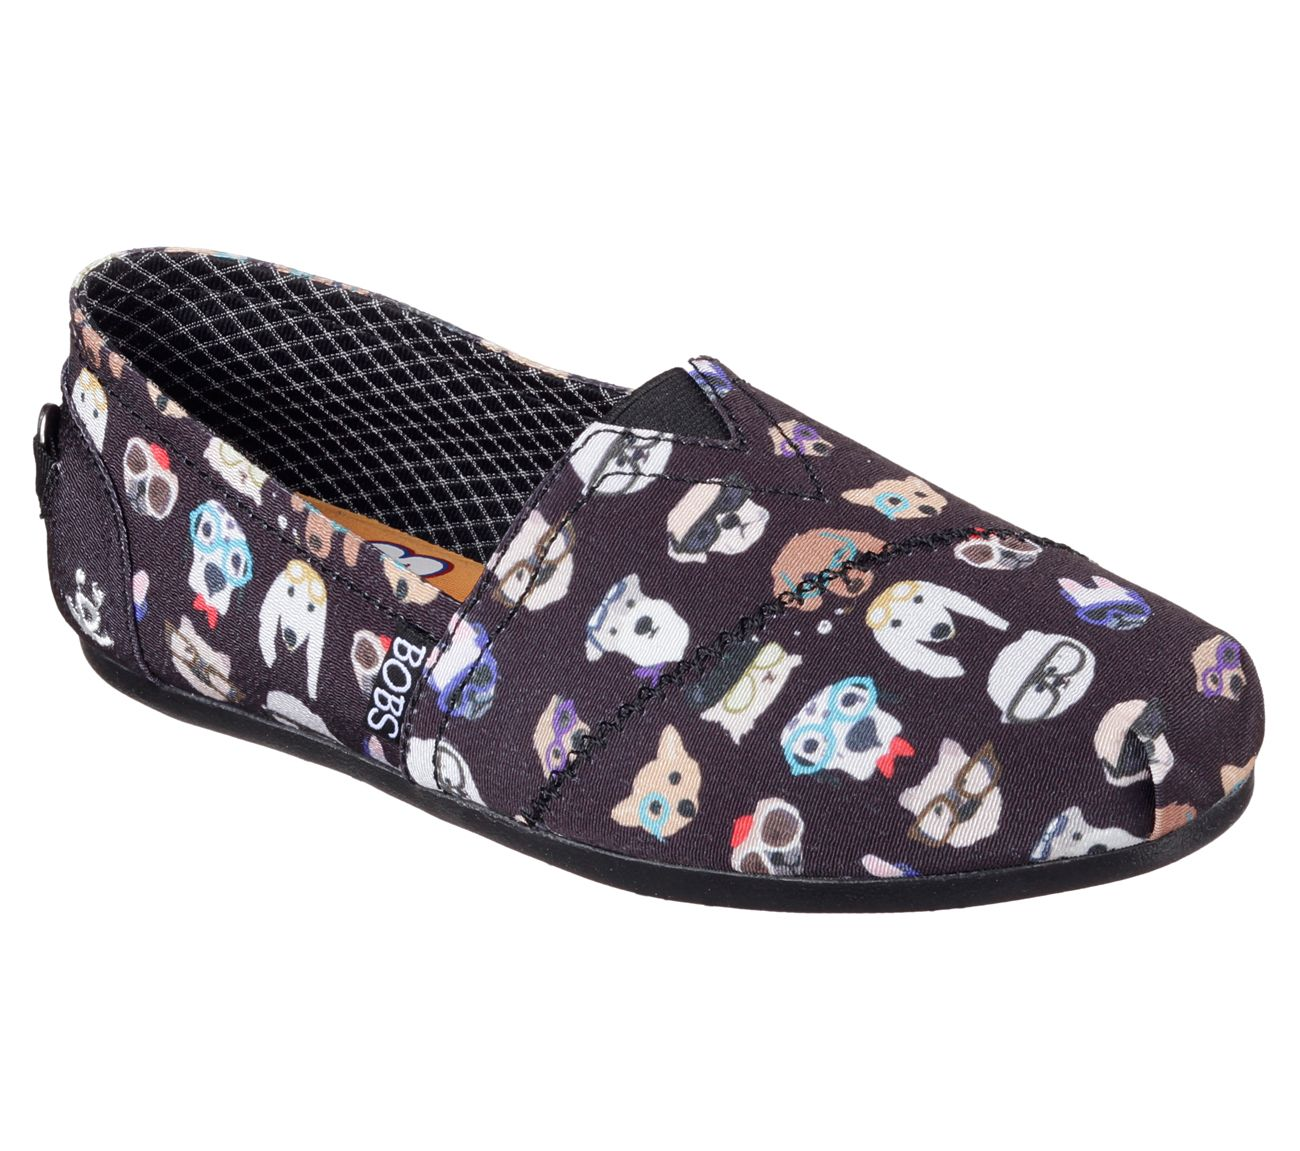 Bob shoes, Loafers for women, Skechers bobs